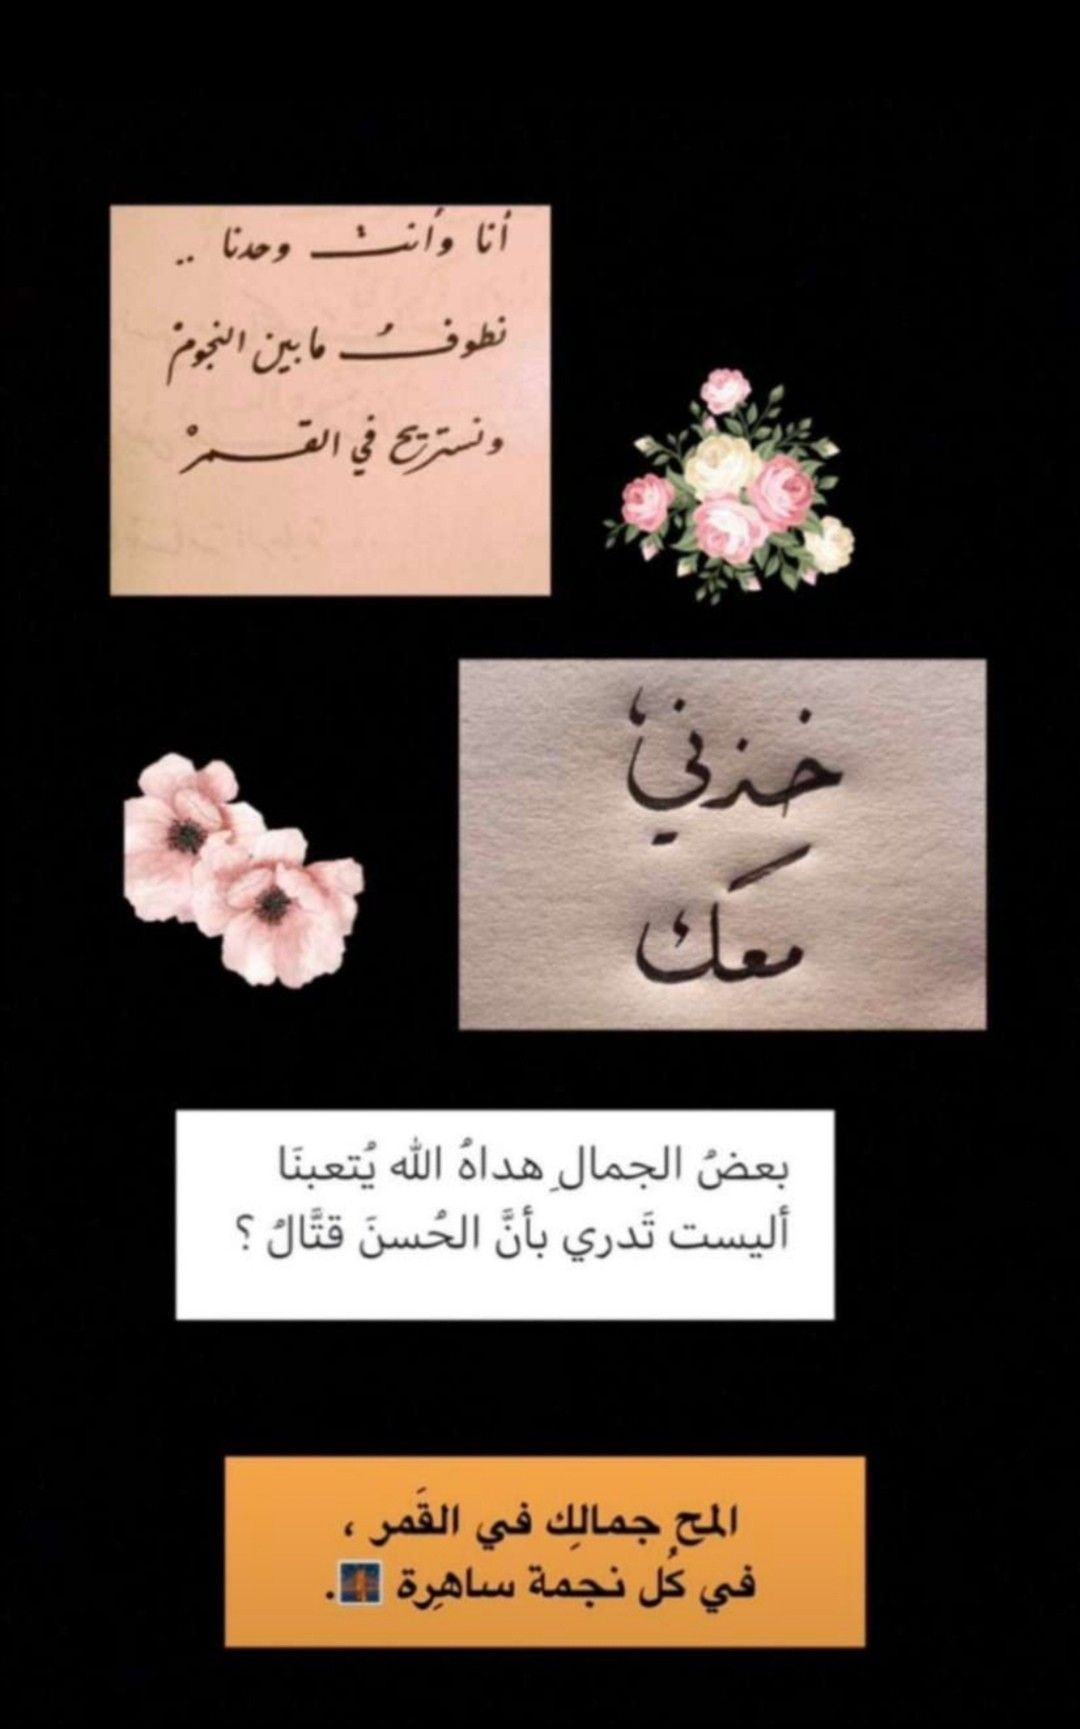 Pin By Roaa On ملصقات Love Smile Quotes Cover Photo Quotes Islamic Love Quotes